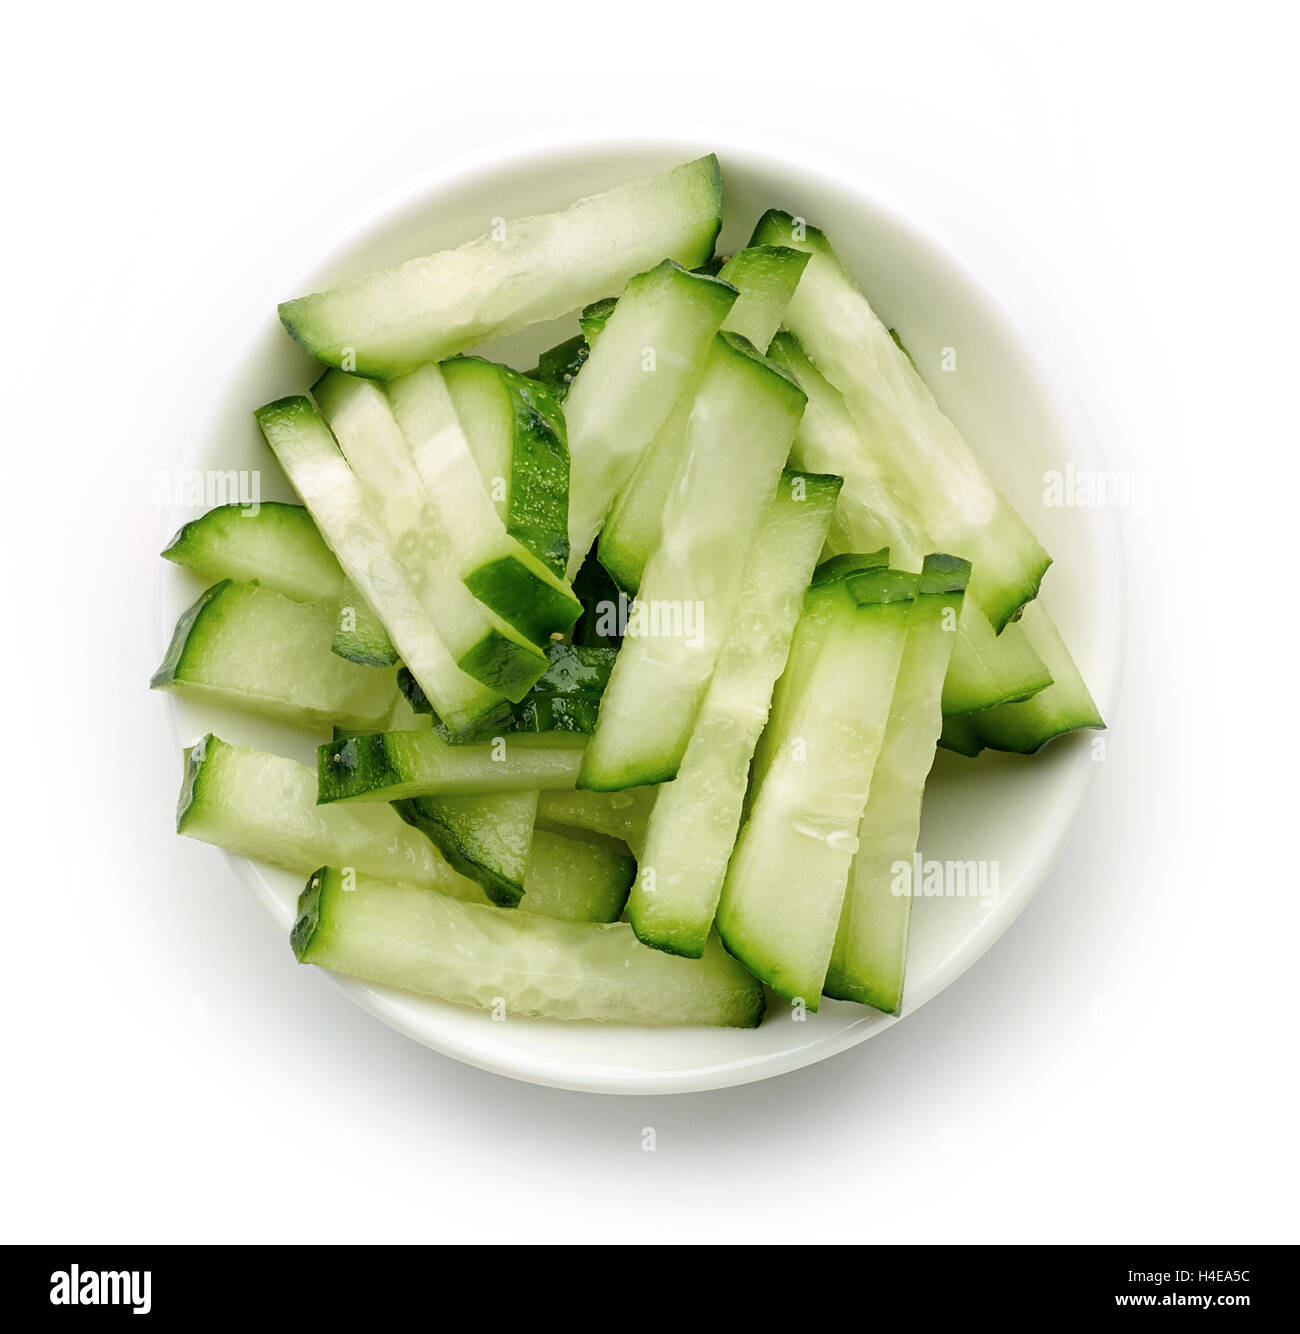 Bowl of fresh cucumber slices isolated on white background, top view - Stock Image